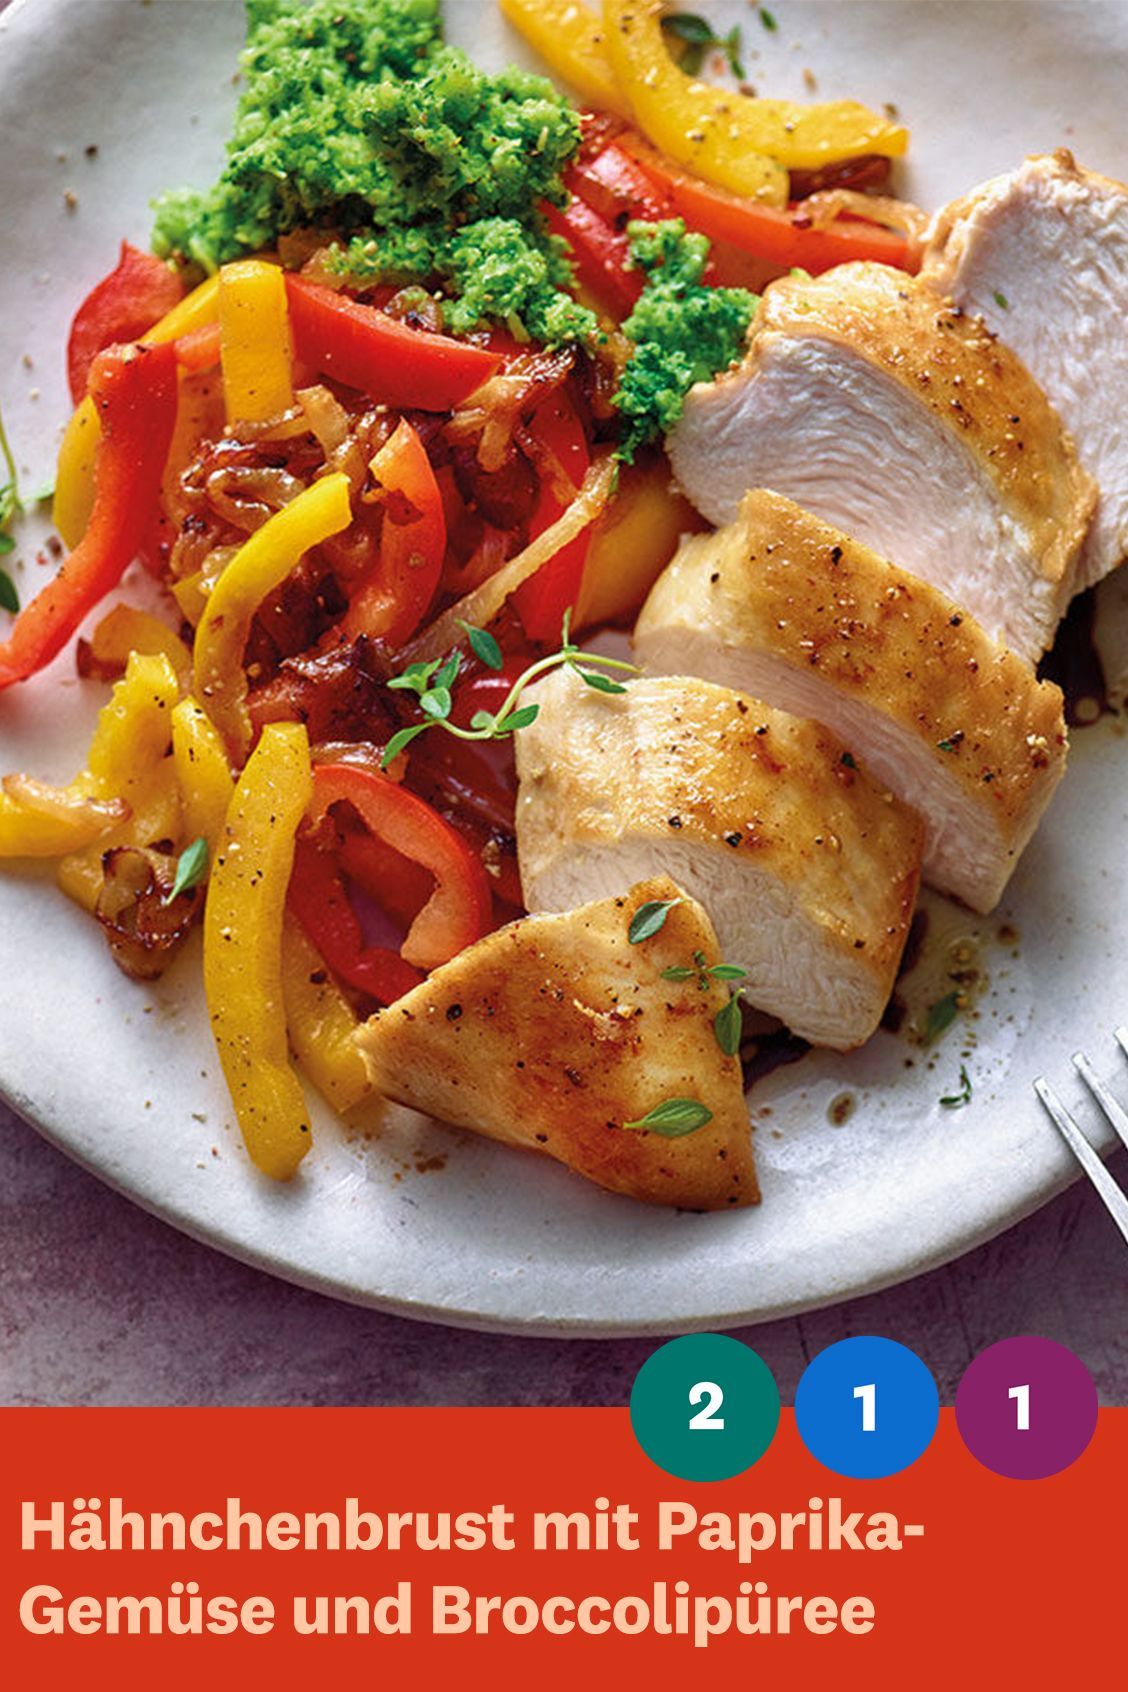 Photo of Chicken breast with peppers and broccoli puree